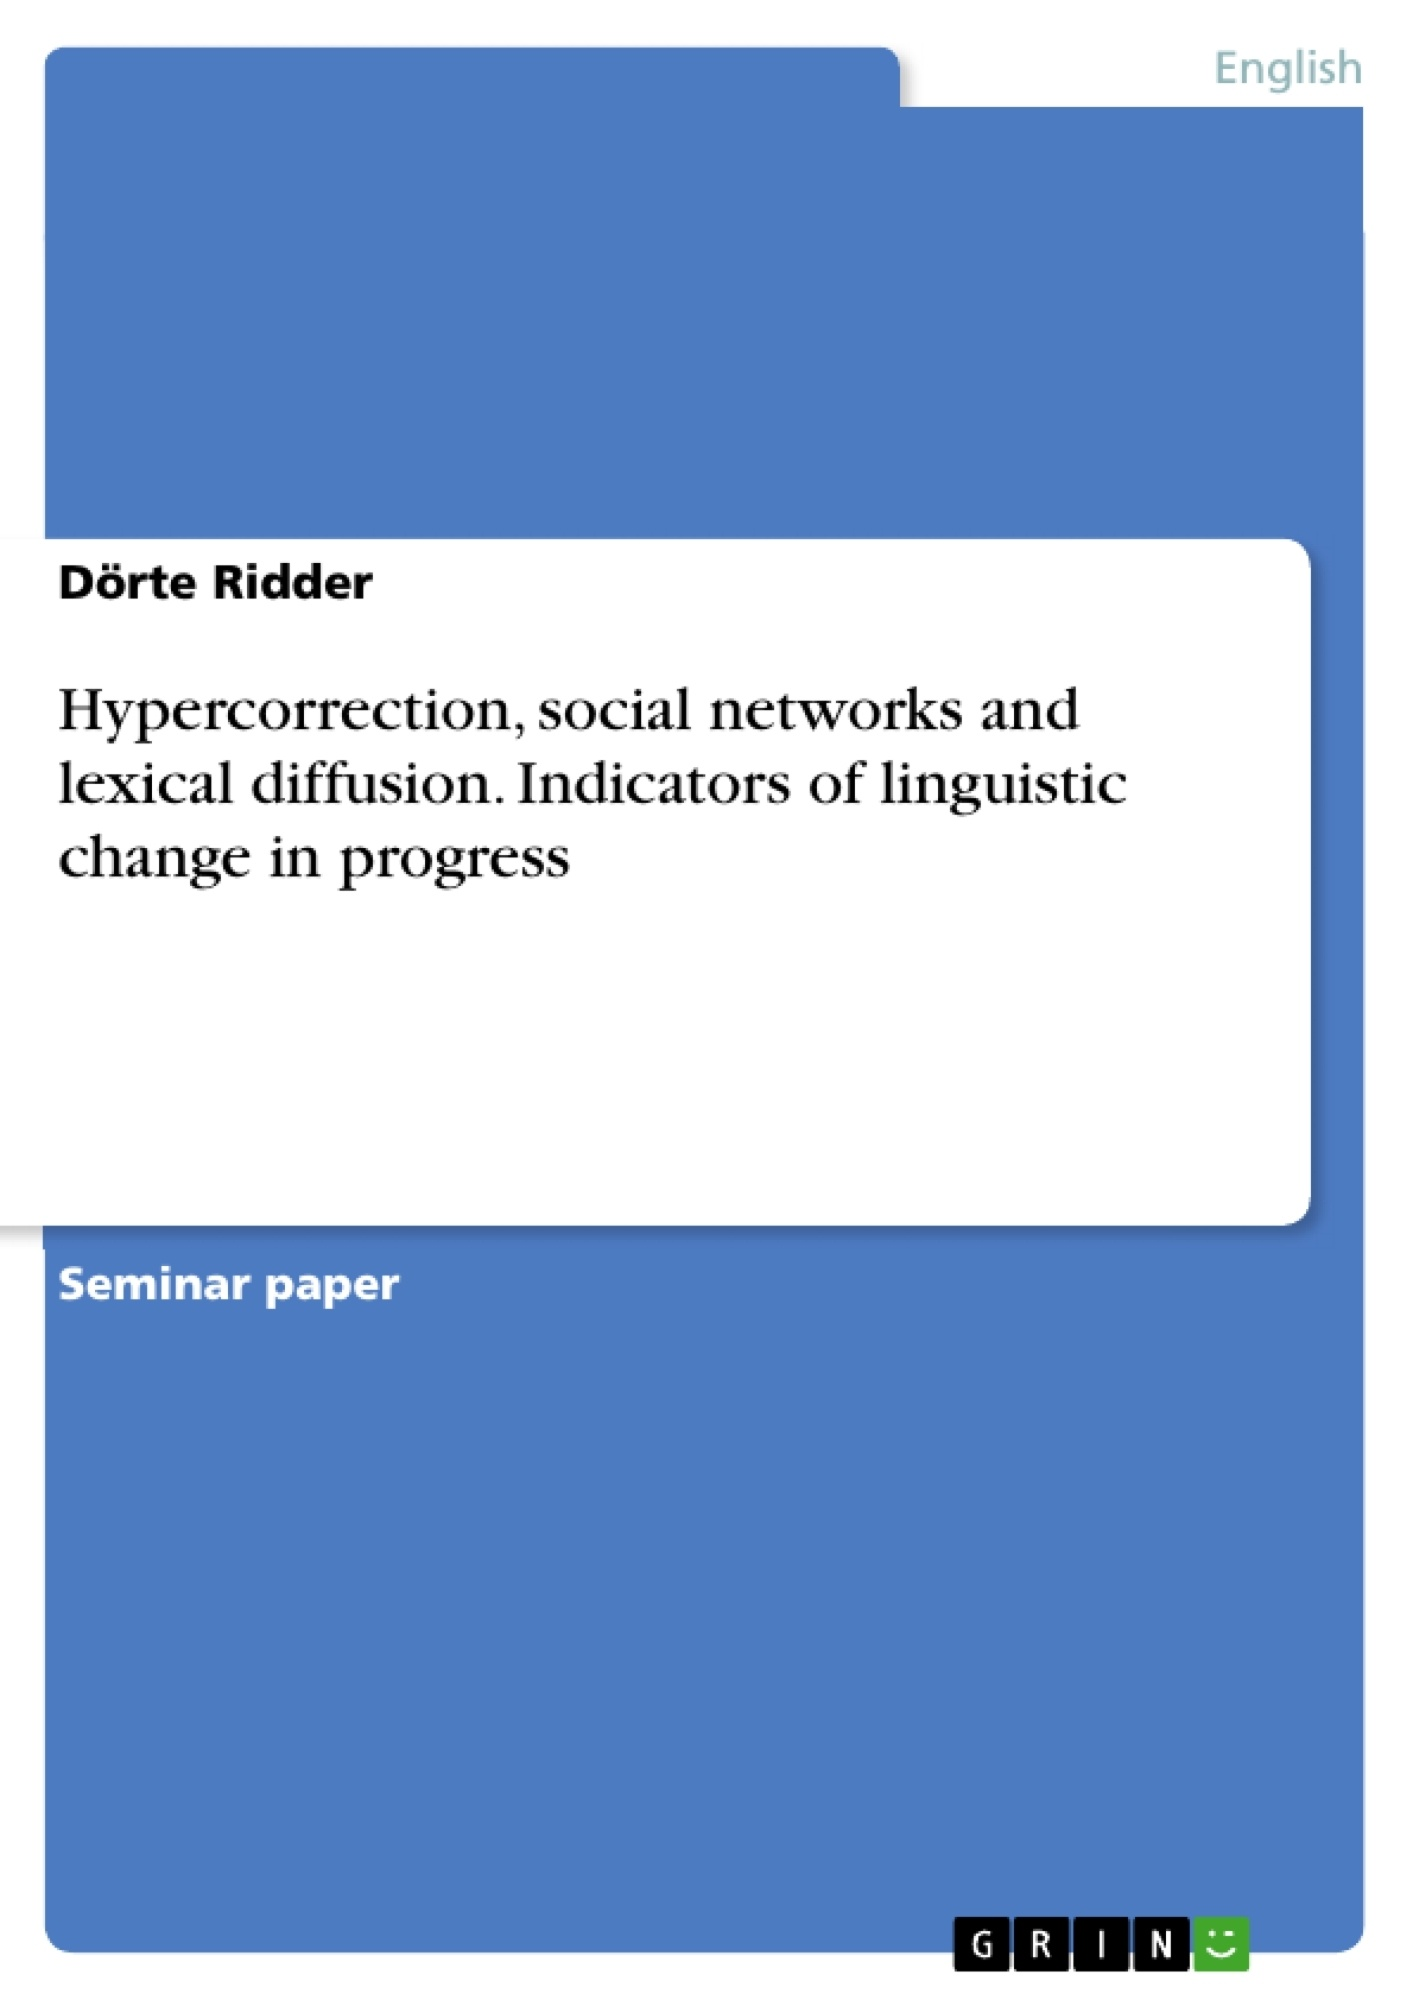 Title: Hypercorrection, social networks and lexical diffusion. Indicators of linguistic change in progress